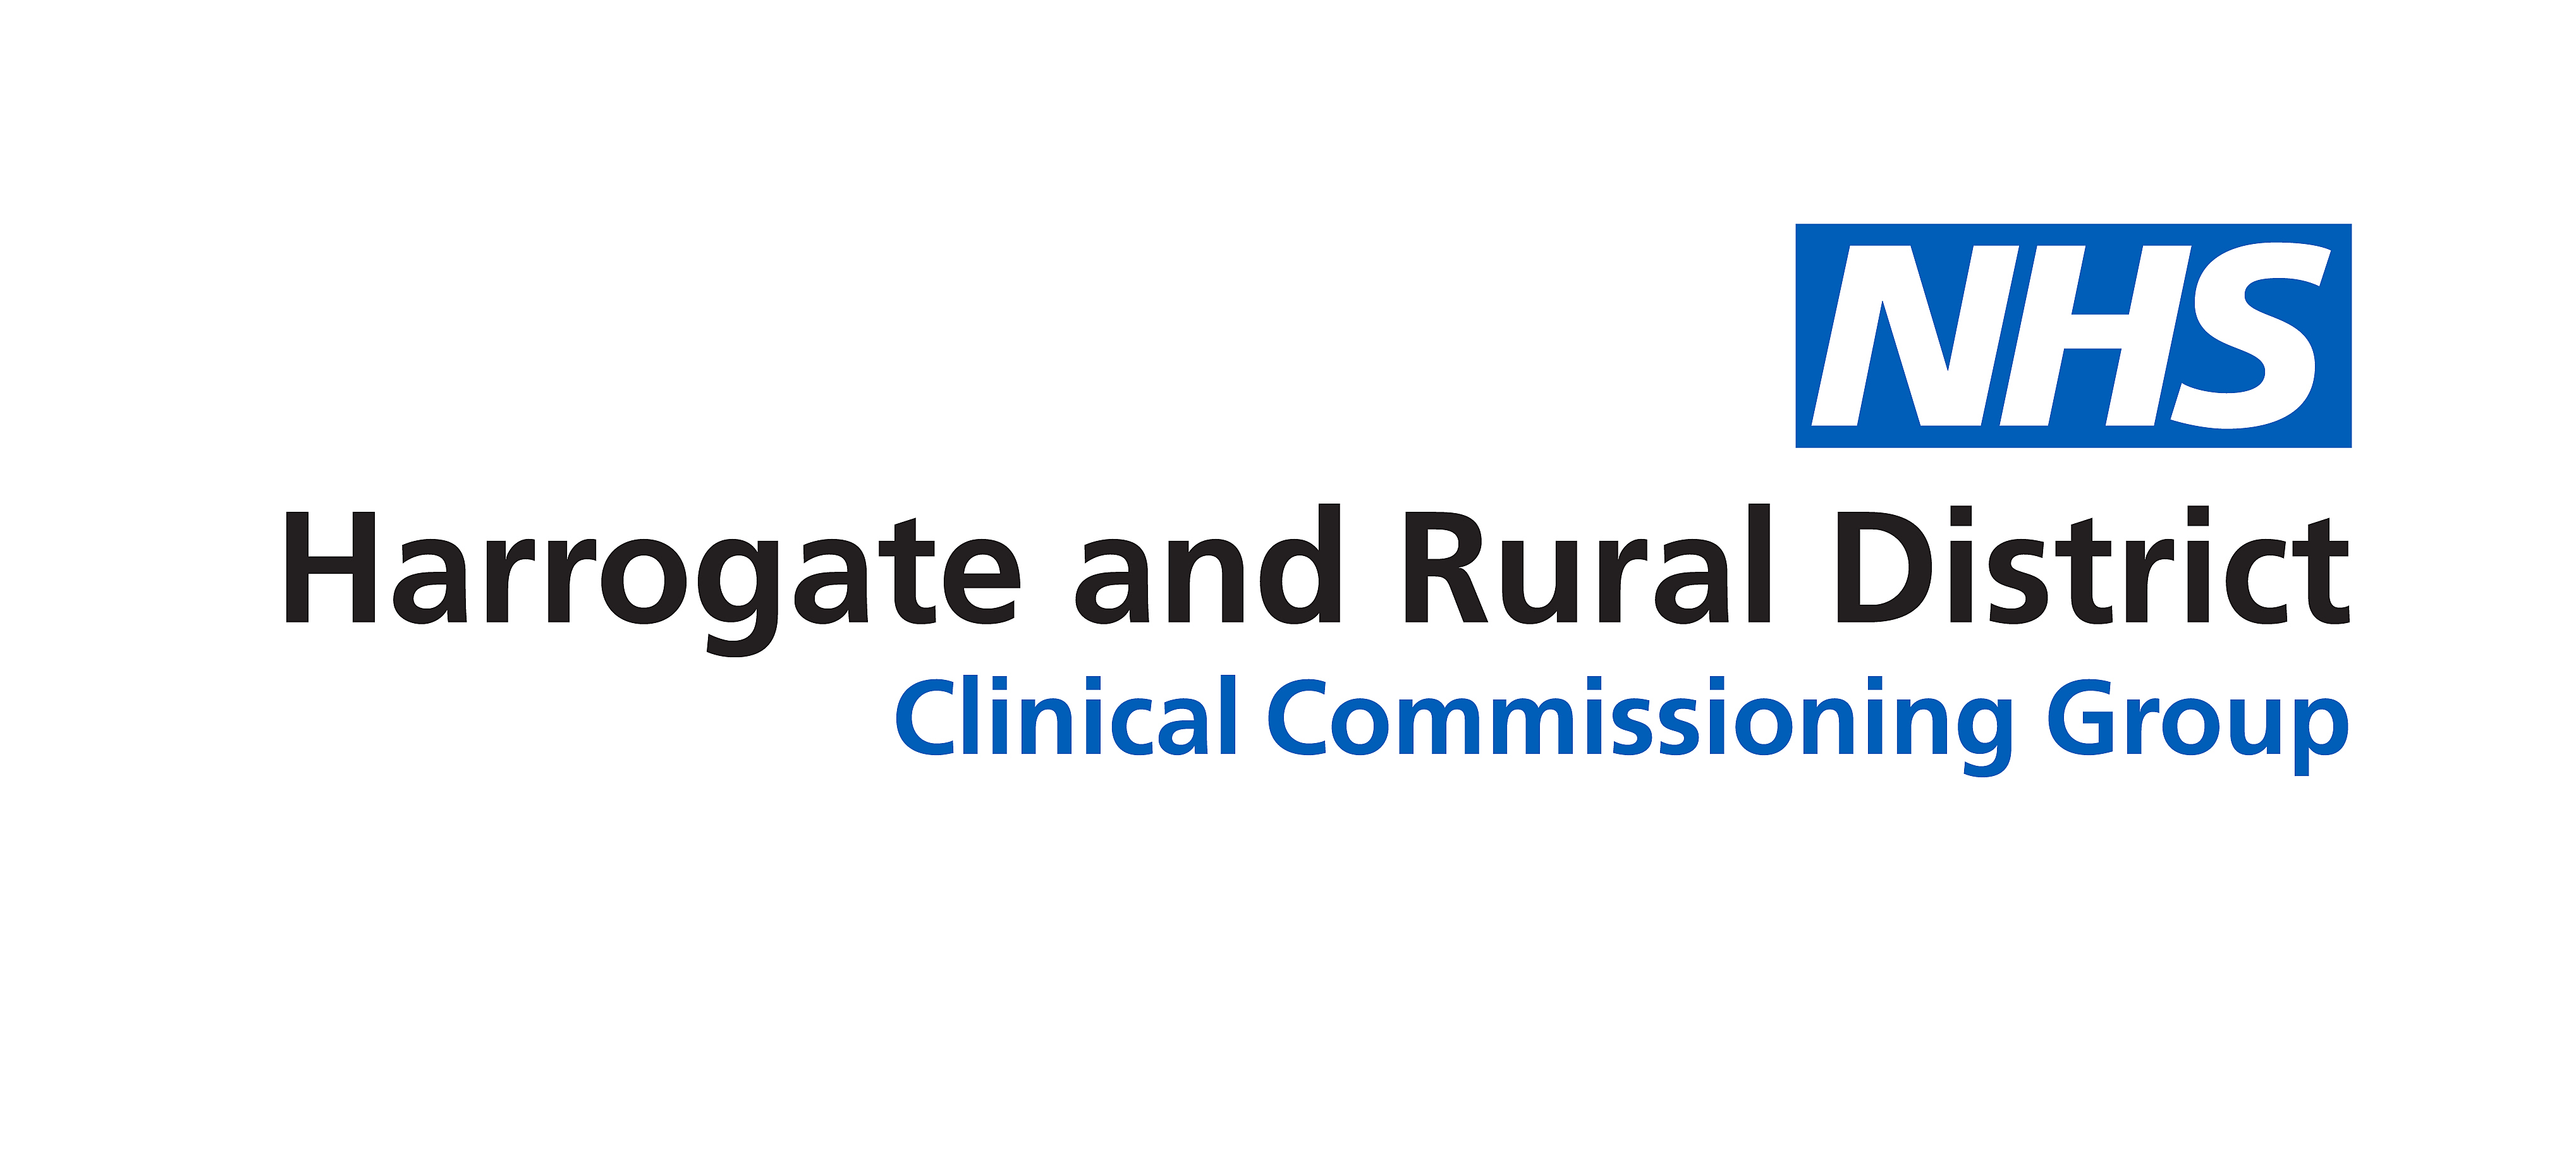 Harrogate_and_Rural_District_CCG_Logo_2017.png